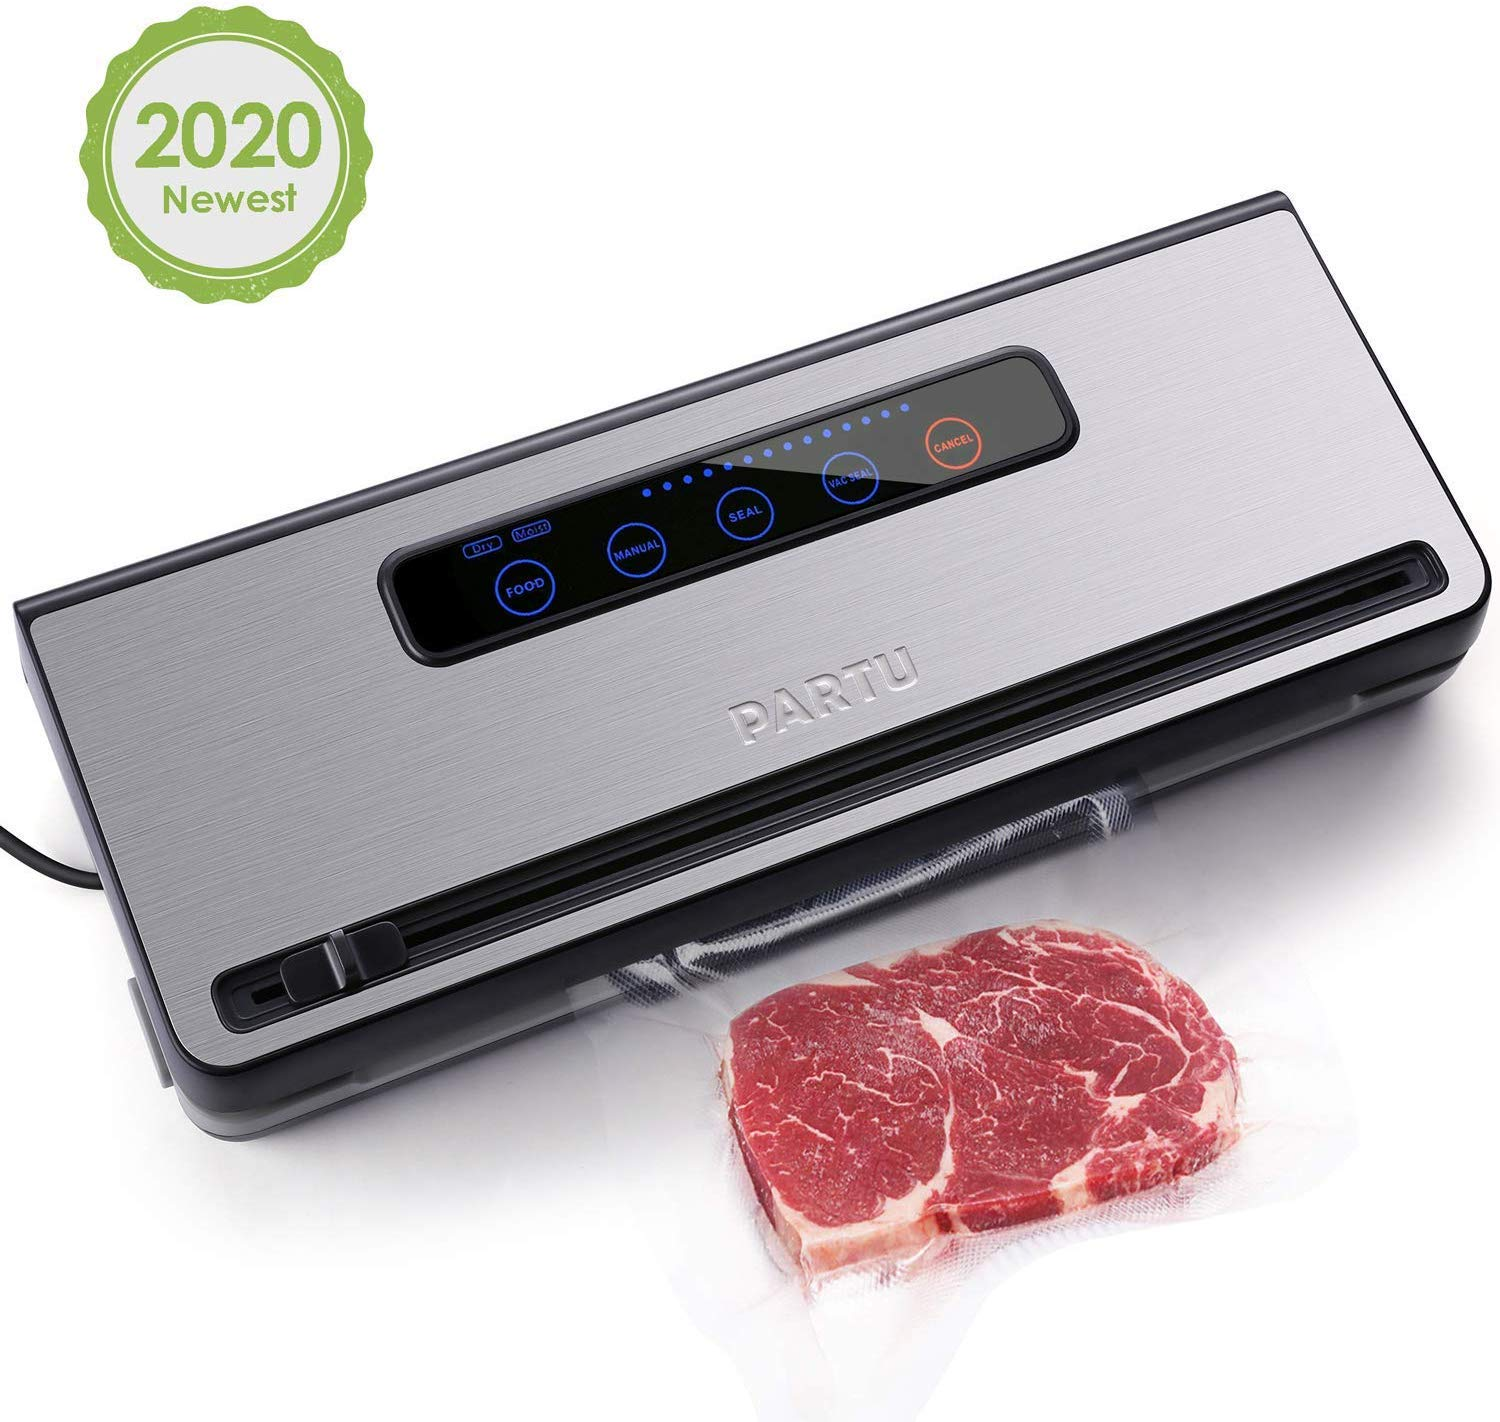 """PARTU 2-in-1 Vacuum Sealer Machine Automatic Food Sealing & Vacuum for Dry/Wet Food Savers w/ 11"""" x 118"""" Sealer Bag, 2 External Suction Pipe for Fresh-keeping Tank and Clothes Storage(Do Not Include Canisters)"""